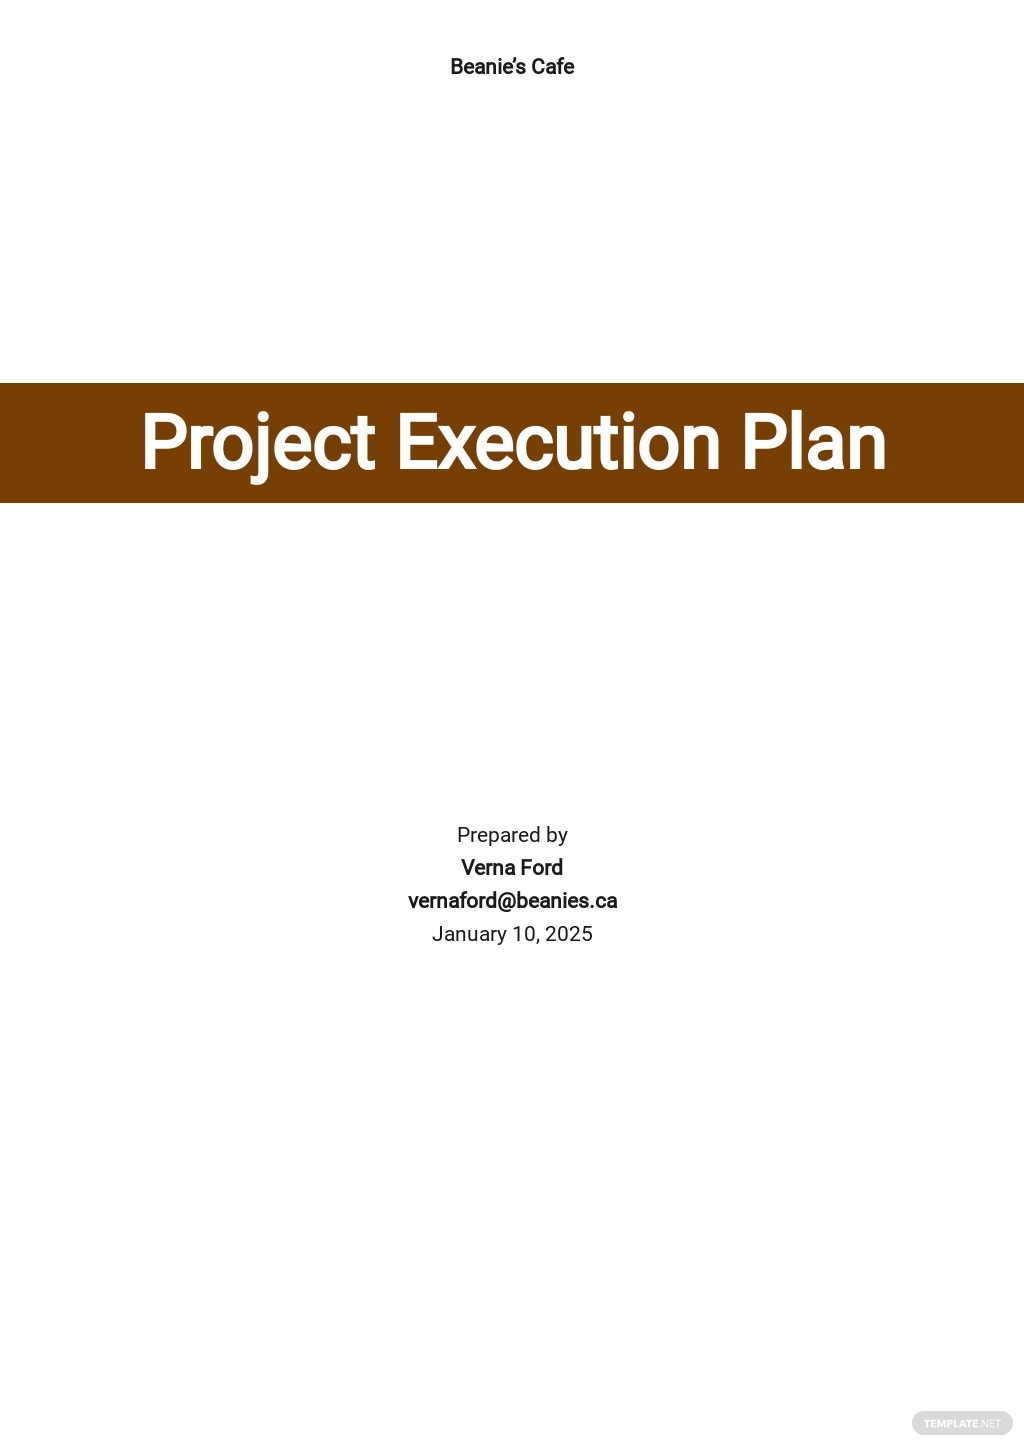 Sample Project Execution Plan Template.jpe